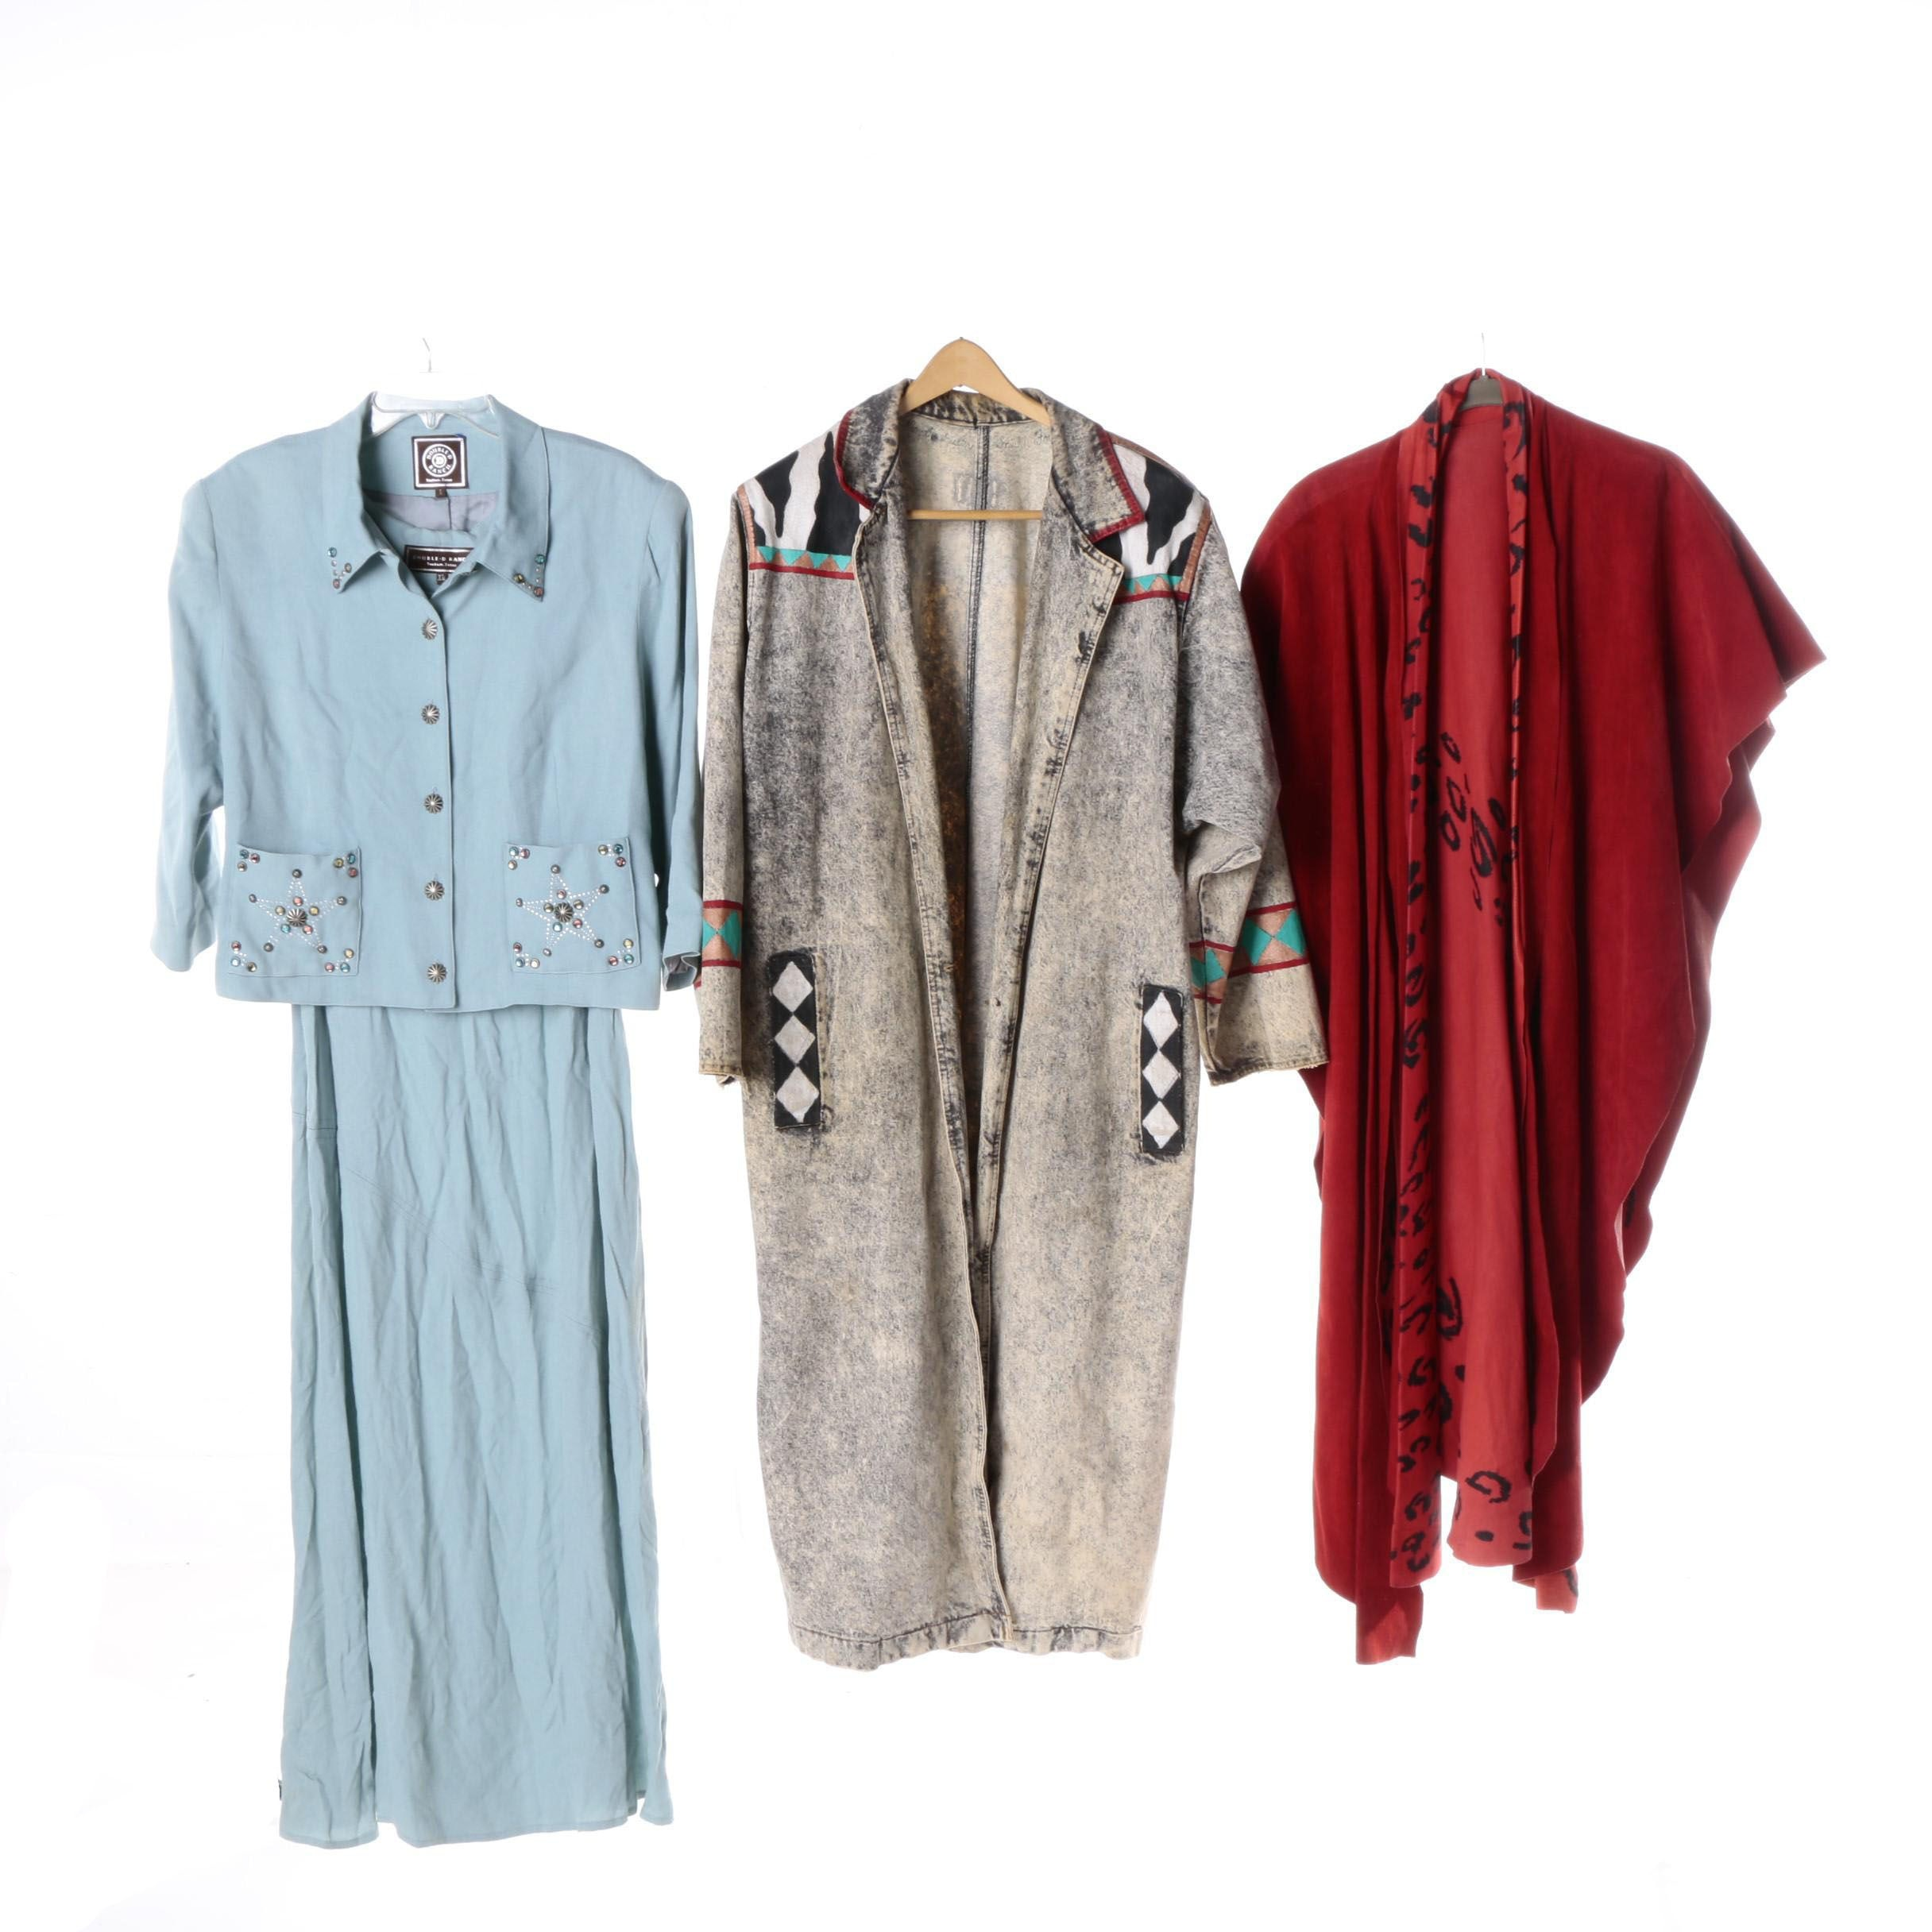 Women's Western Style Duster, Poncho and Double-D Ranch Dress Ensemble